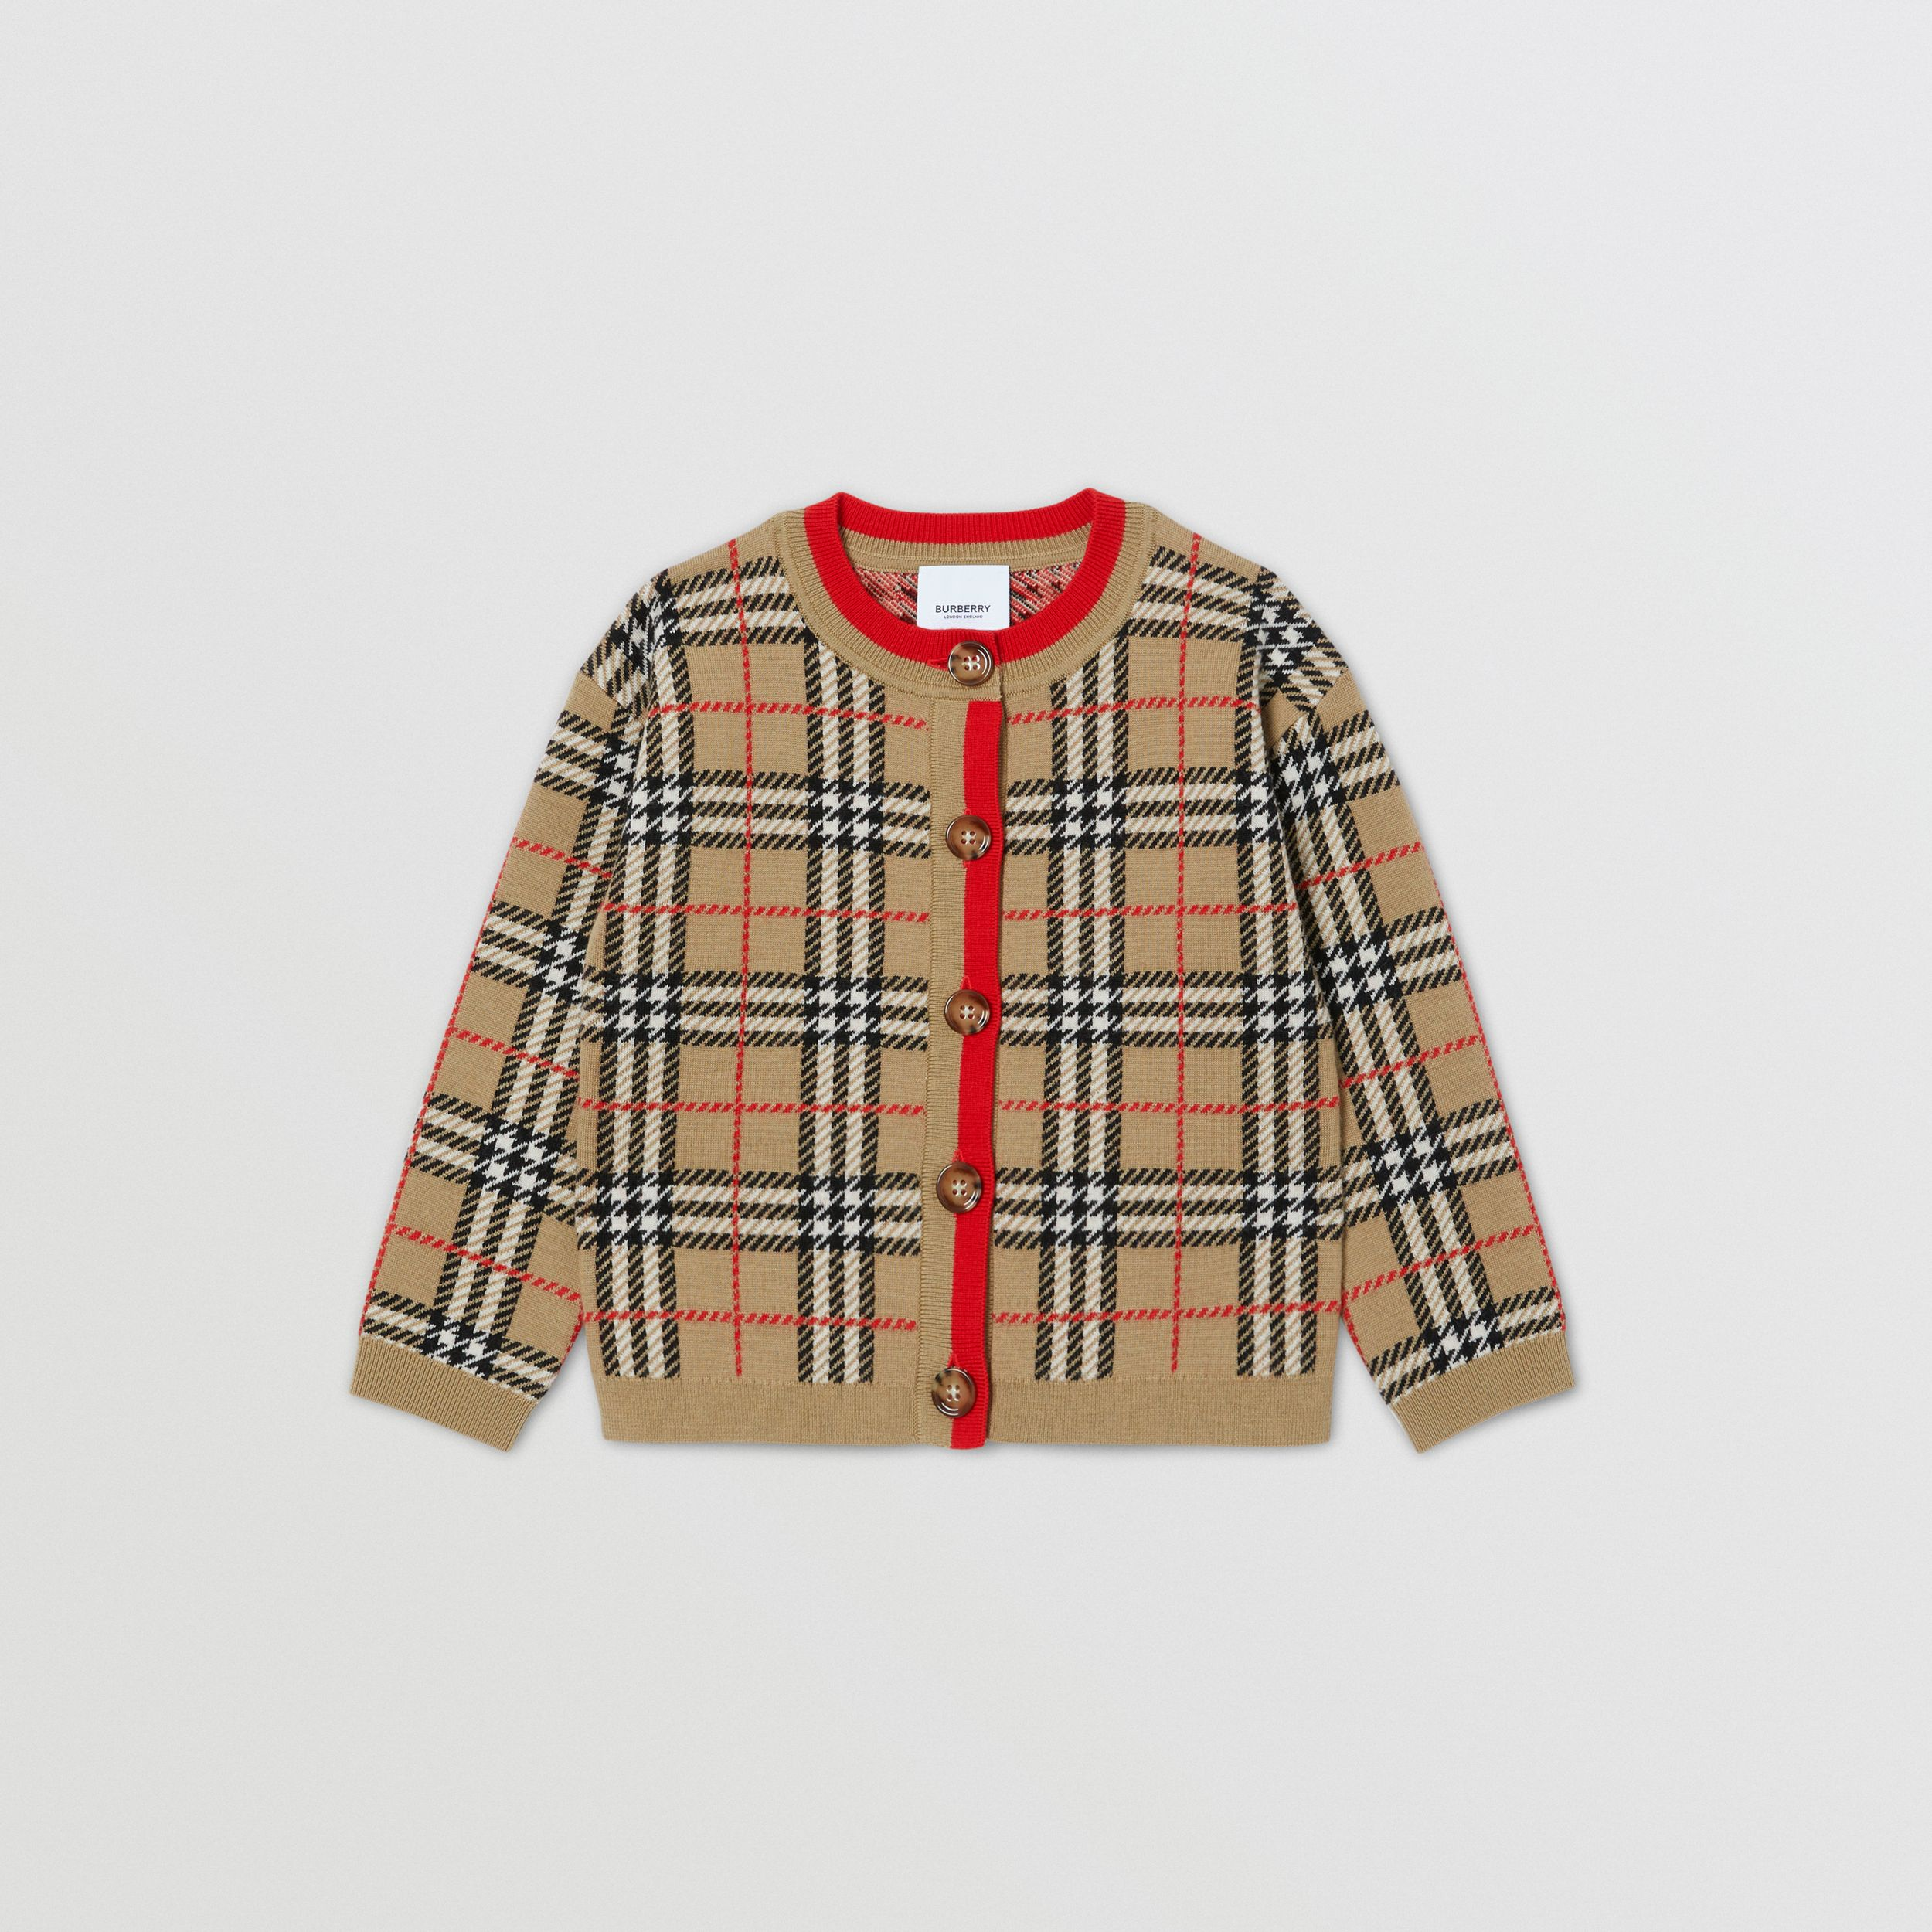 Check Merino Wool Jacquard Cardigan | Burberry - 1